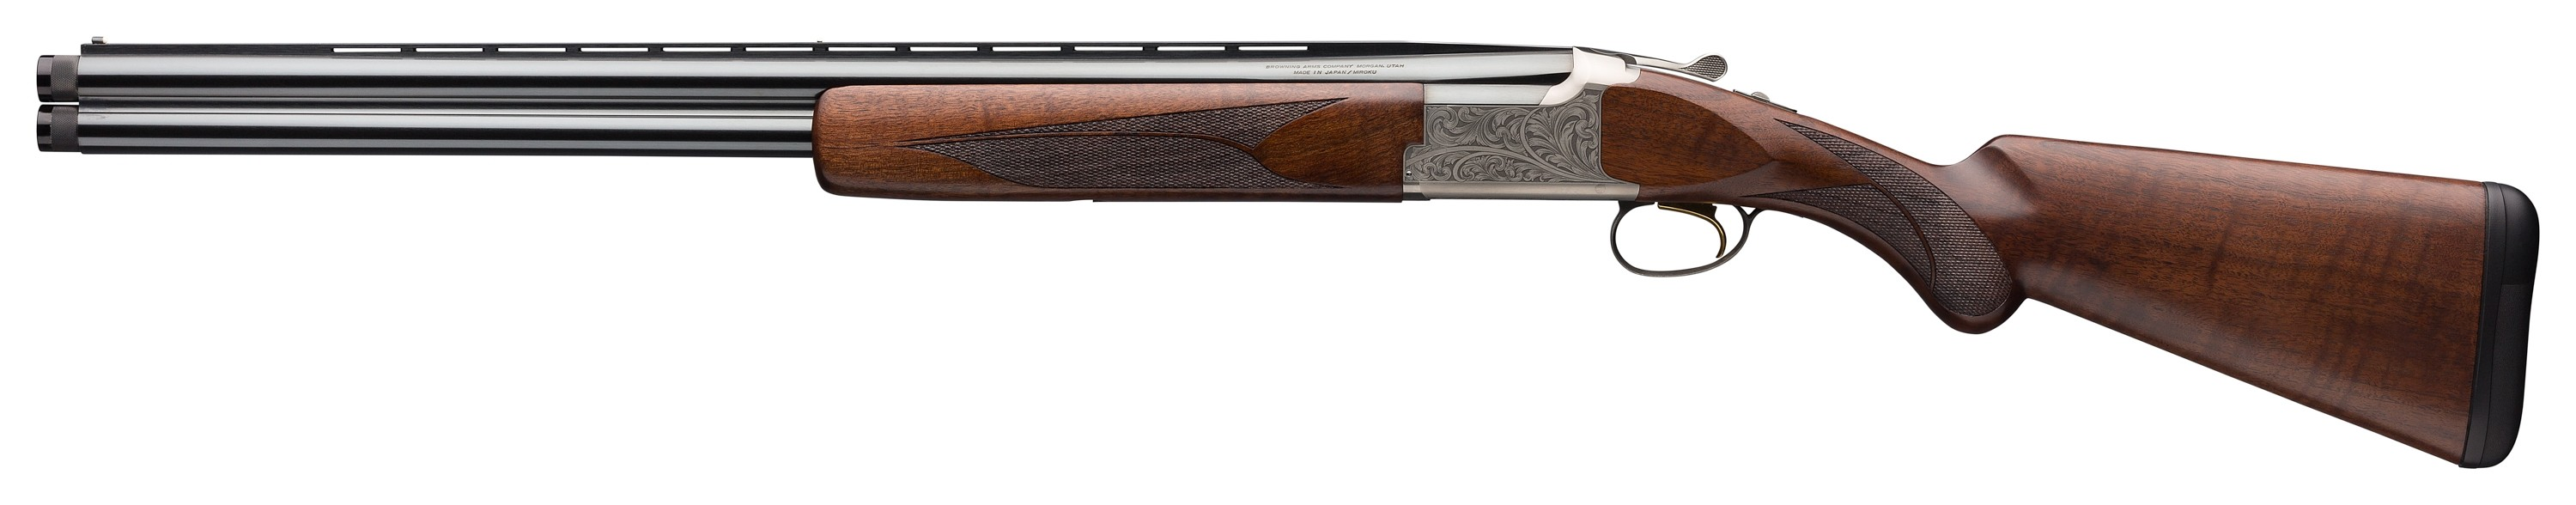 Browning 018142913 Citori White Lightning 410 Gauge 28in. 2 3in. Silver Nitride Oil Black Walnut Right Hand